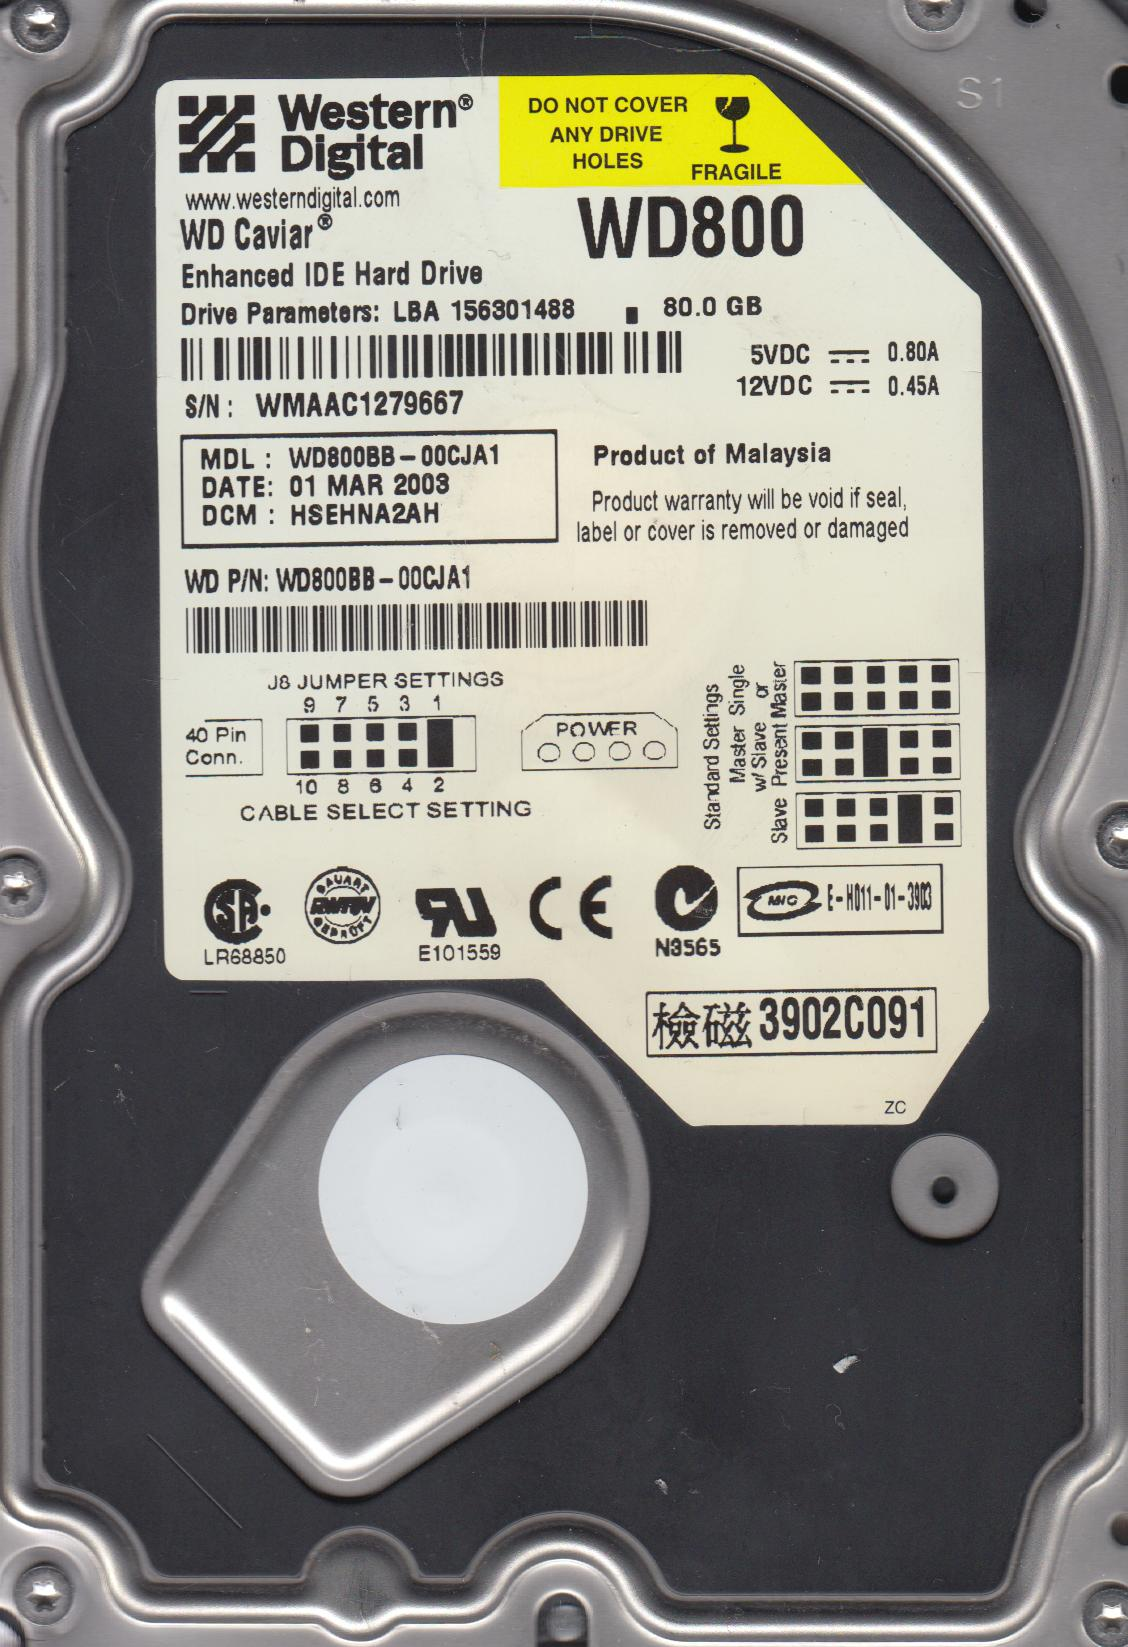 WD800BB-00CJA1, DCM HSEHNA2AH, Western Digital 80GB IDE 3.5 Hard Drive by WD